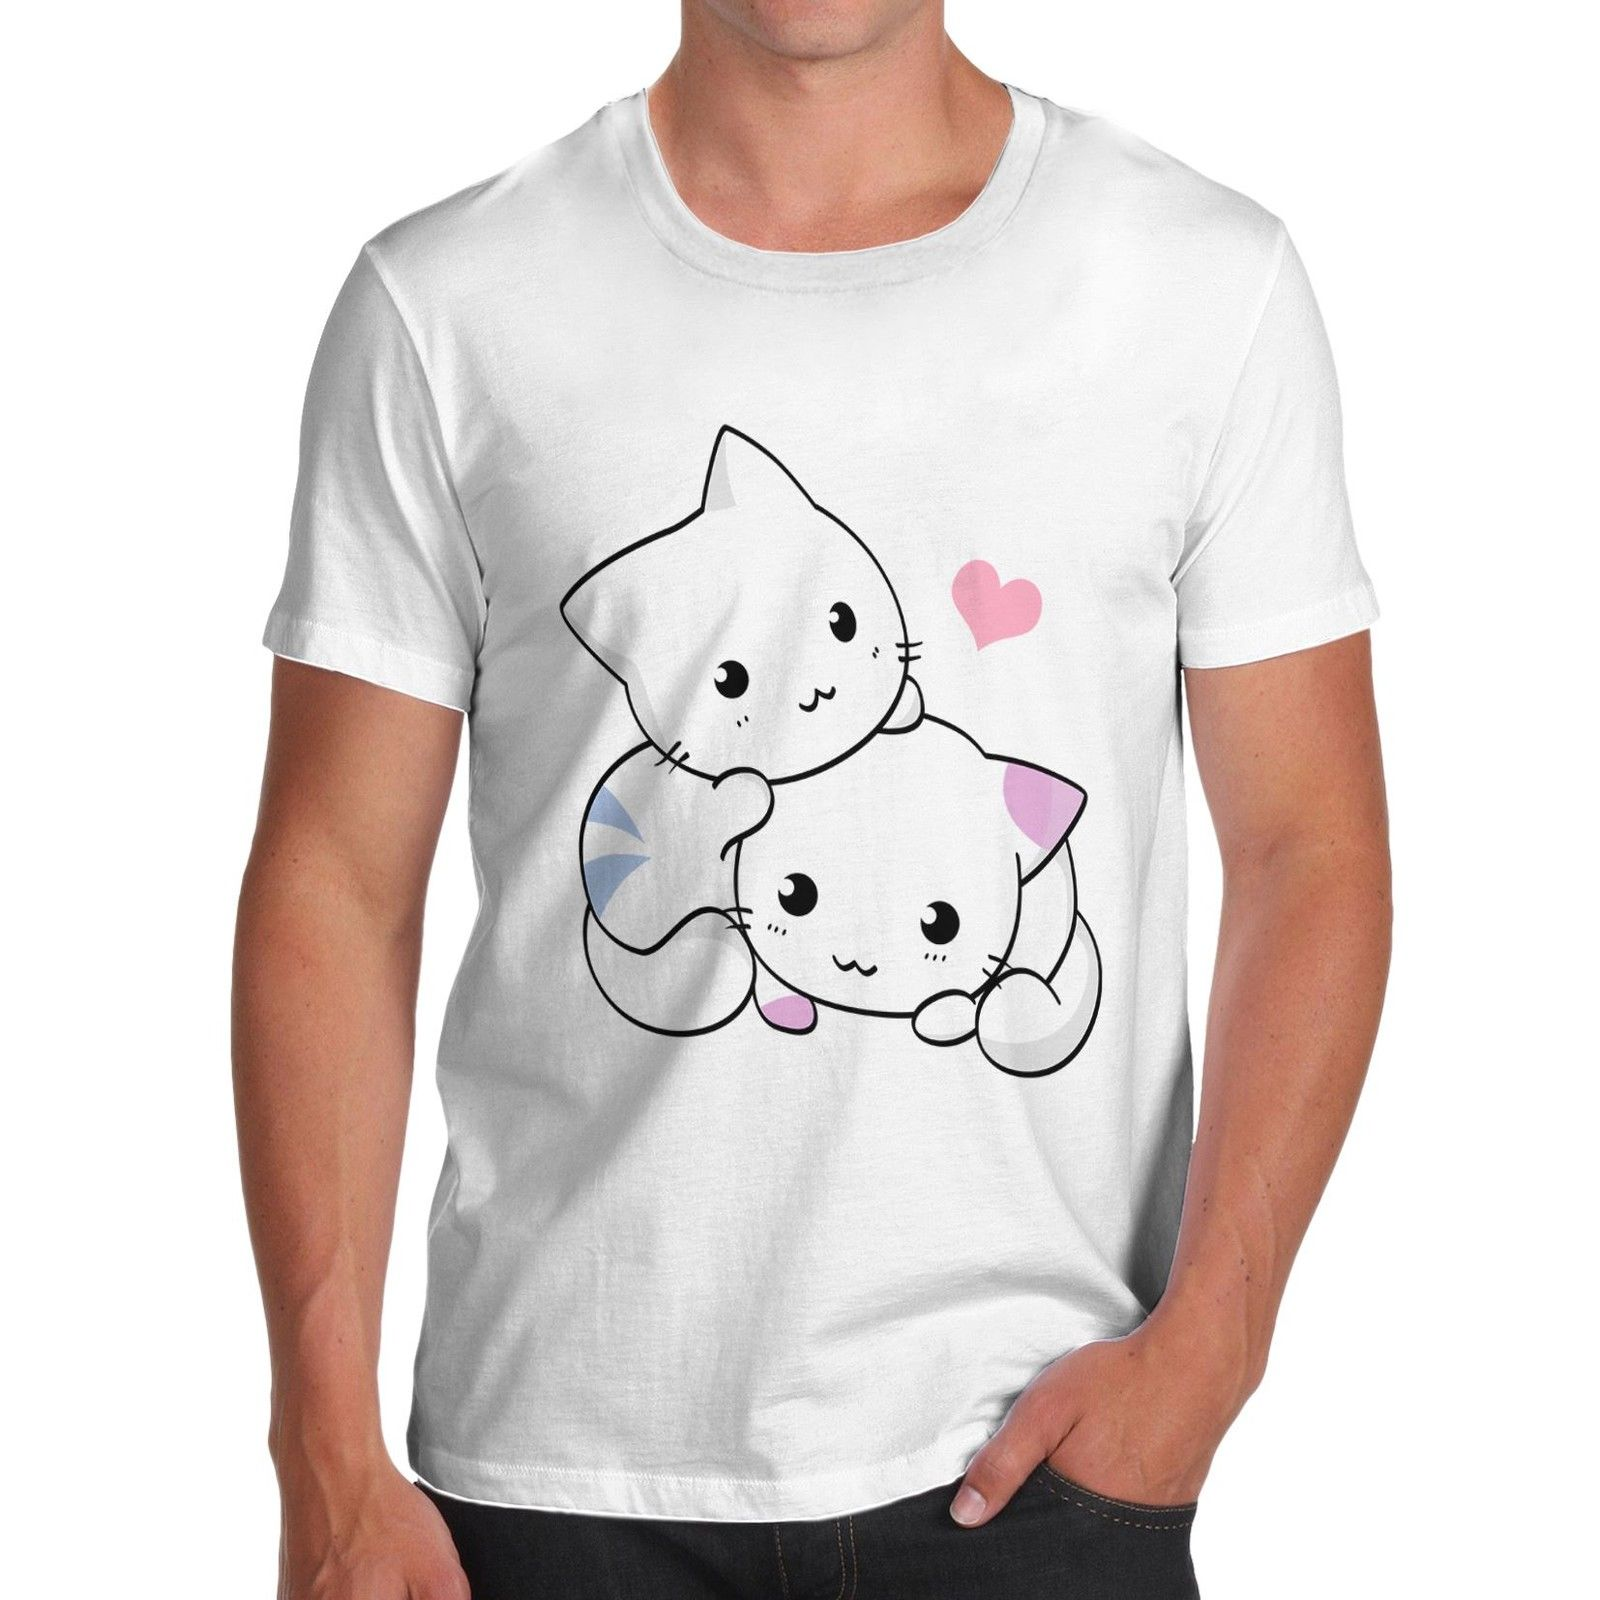 Design t shirt graphics online - Online T Shirt Design Graphic Crew Neck Cotton Novelty Funny Design Loveable Cute Cats Short Sleeve